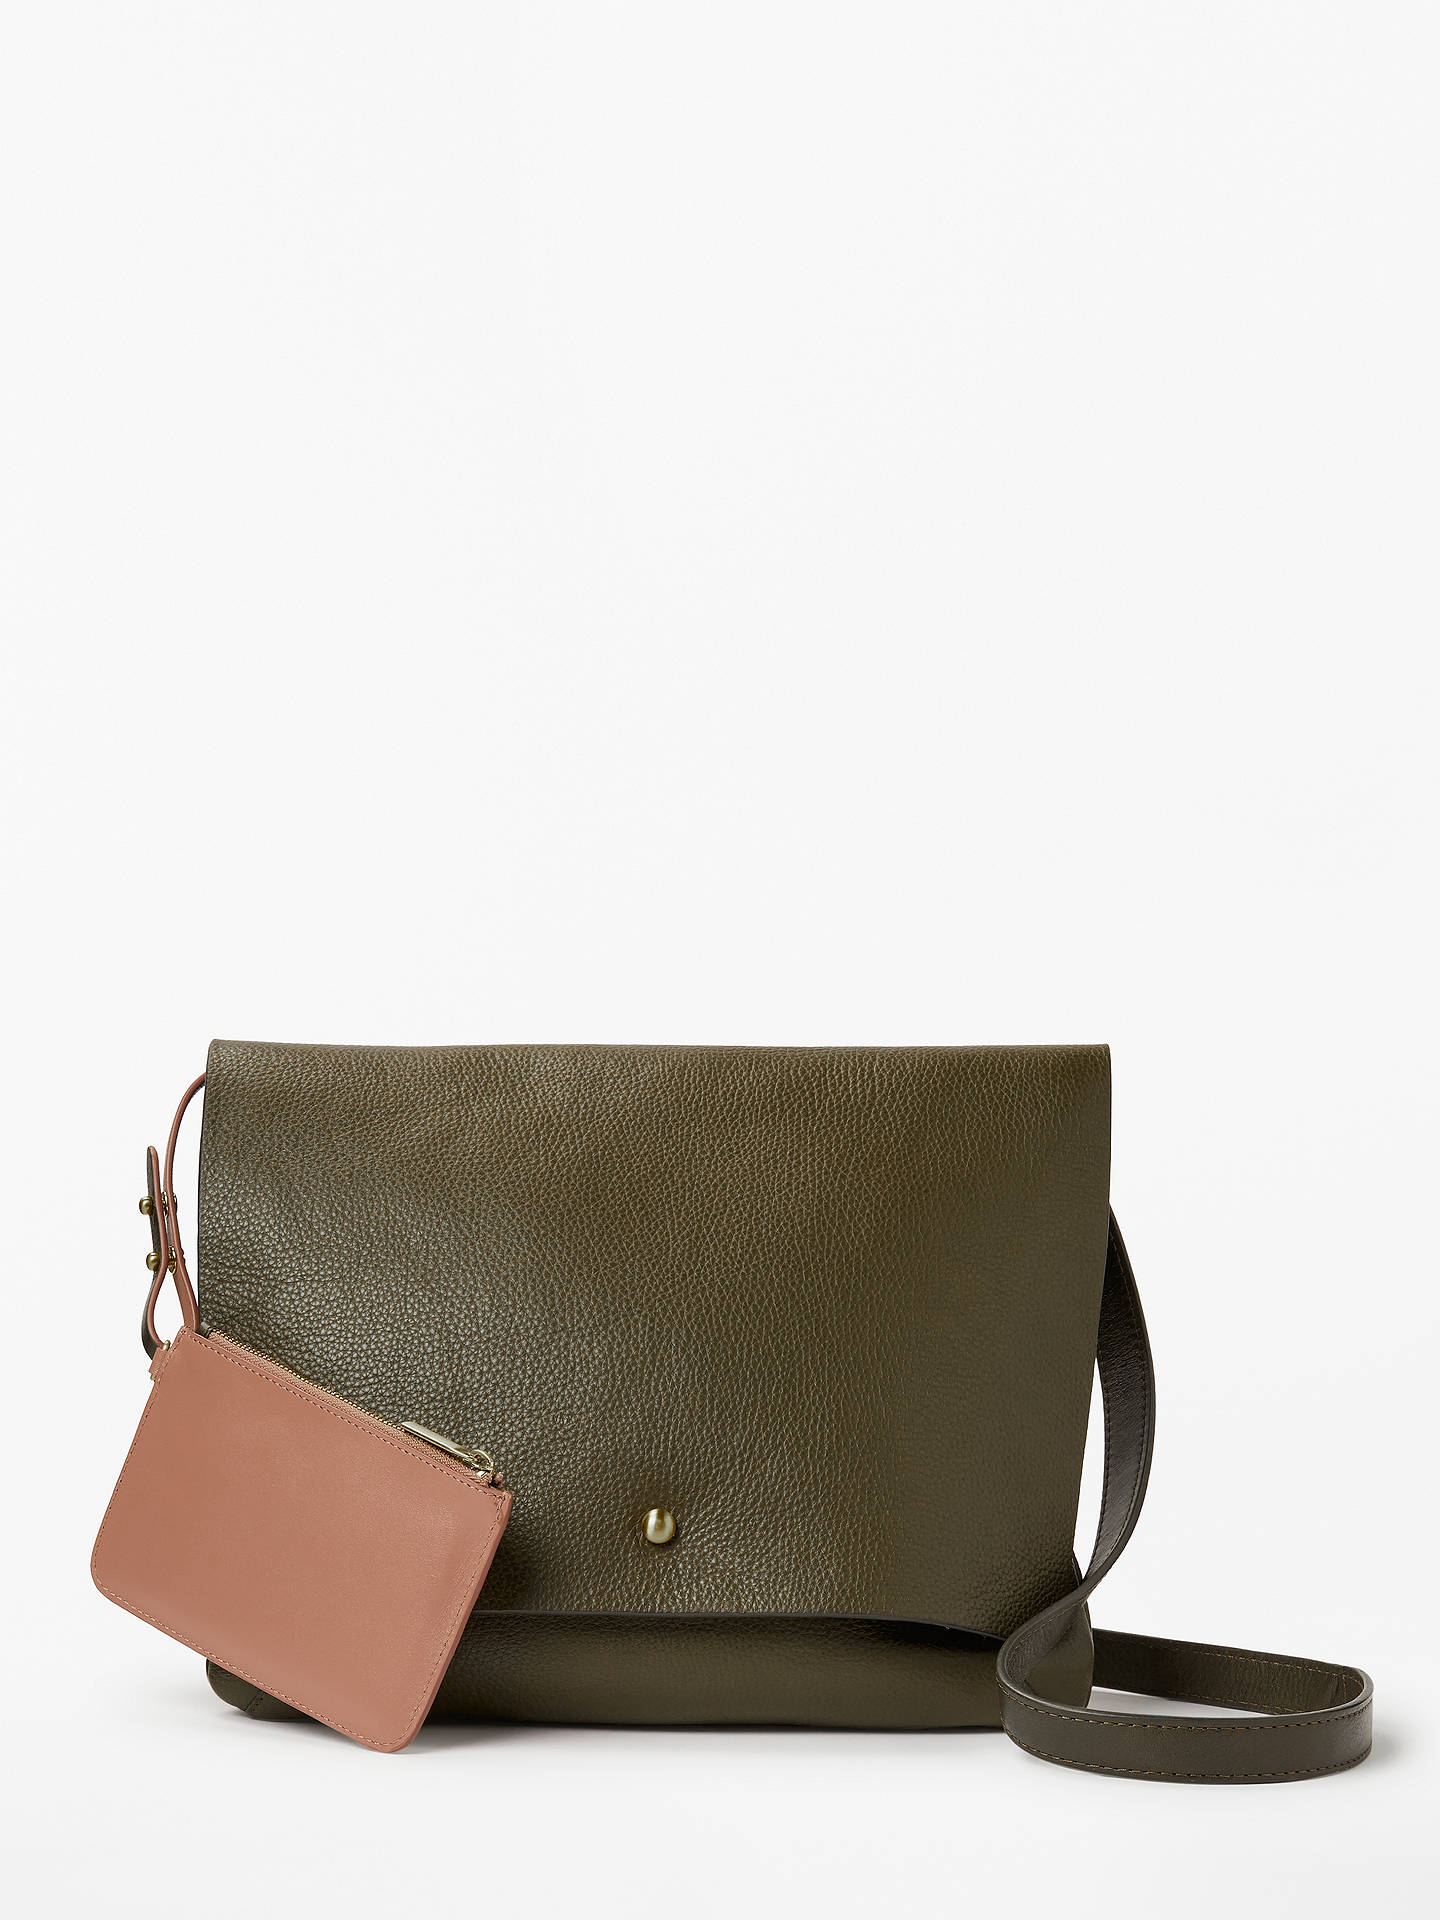 Buy John Lewis & Partners Mae Leather Medium Cross Body Bag, Olive Online at johnlewis.com